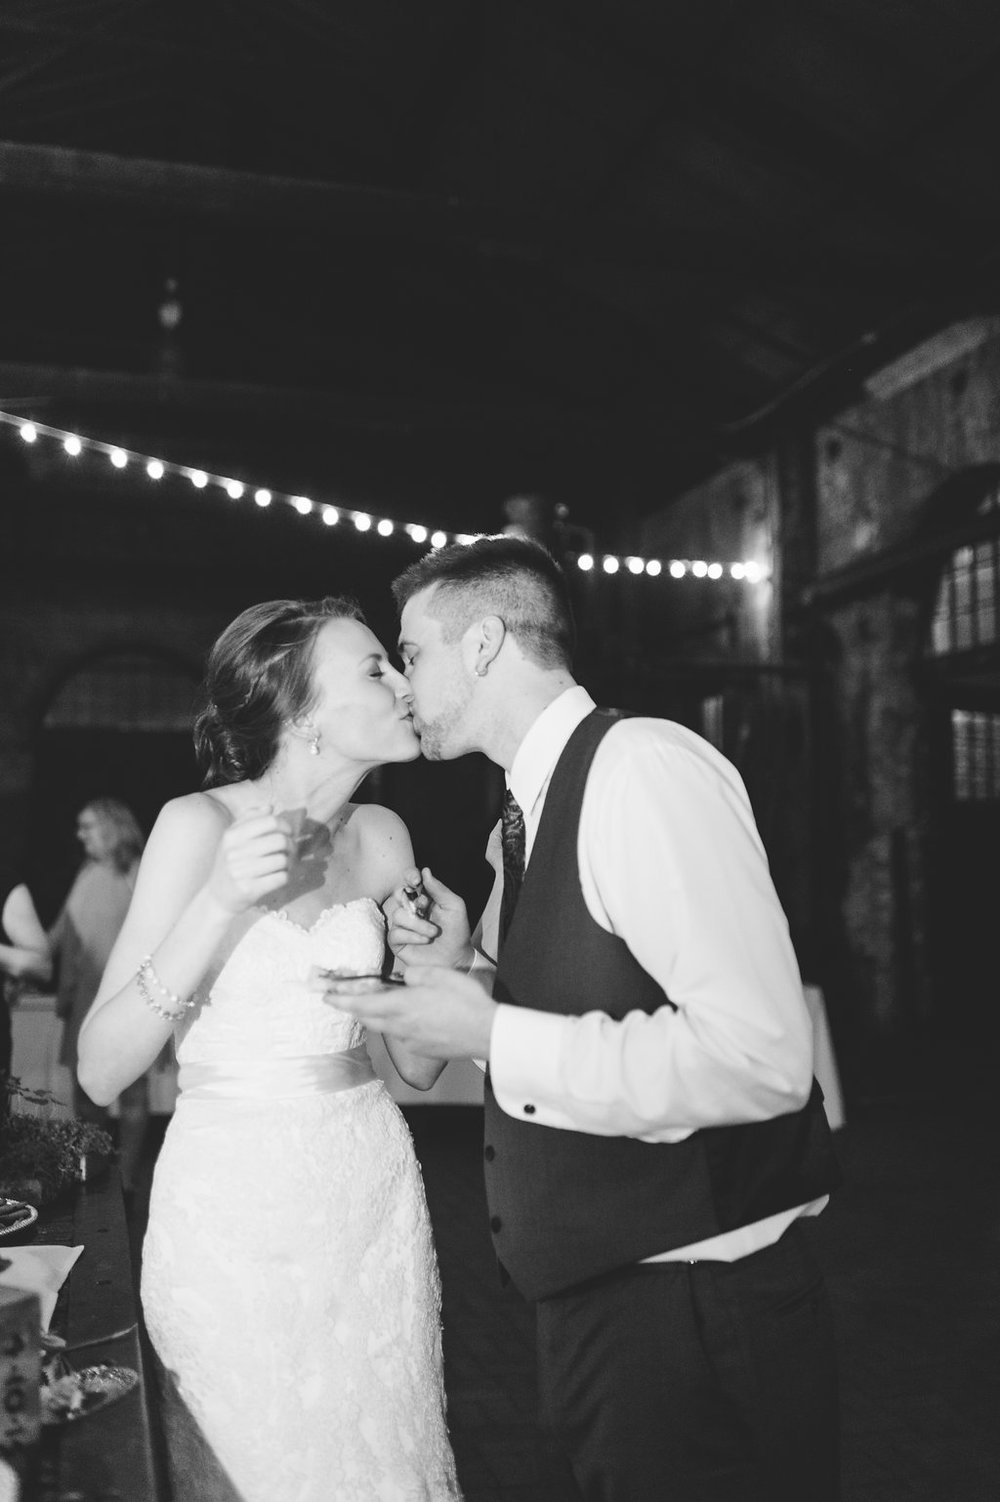 rach-lea-photography-rach-loves-troy-roundhouse-railroad-museum-wedding-ivory-and-beau-savannah-wedding-planner-savannah-weddings-savannah-florist-ivory-and-beau-bridal-boutique-succulent-blush-wedding-51.jpg